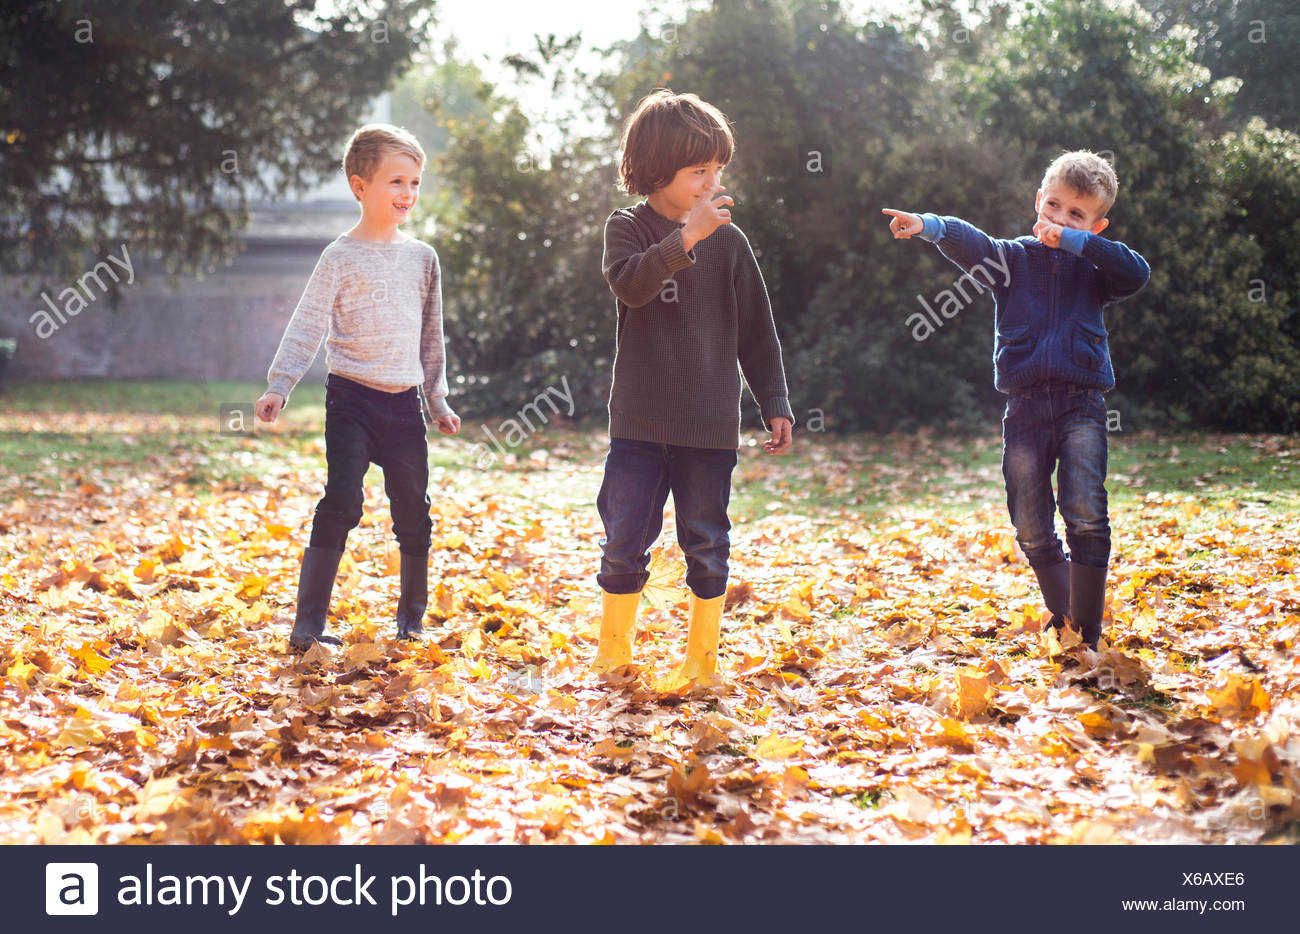 Three boys playing outdoors, in autumn leaves - Stock Image